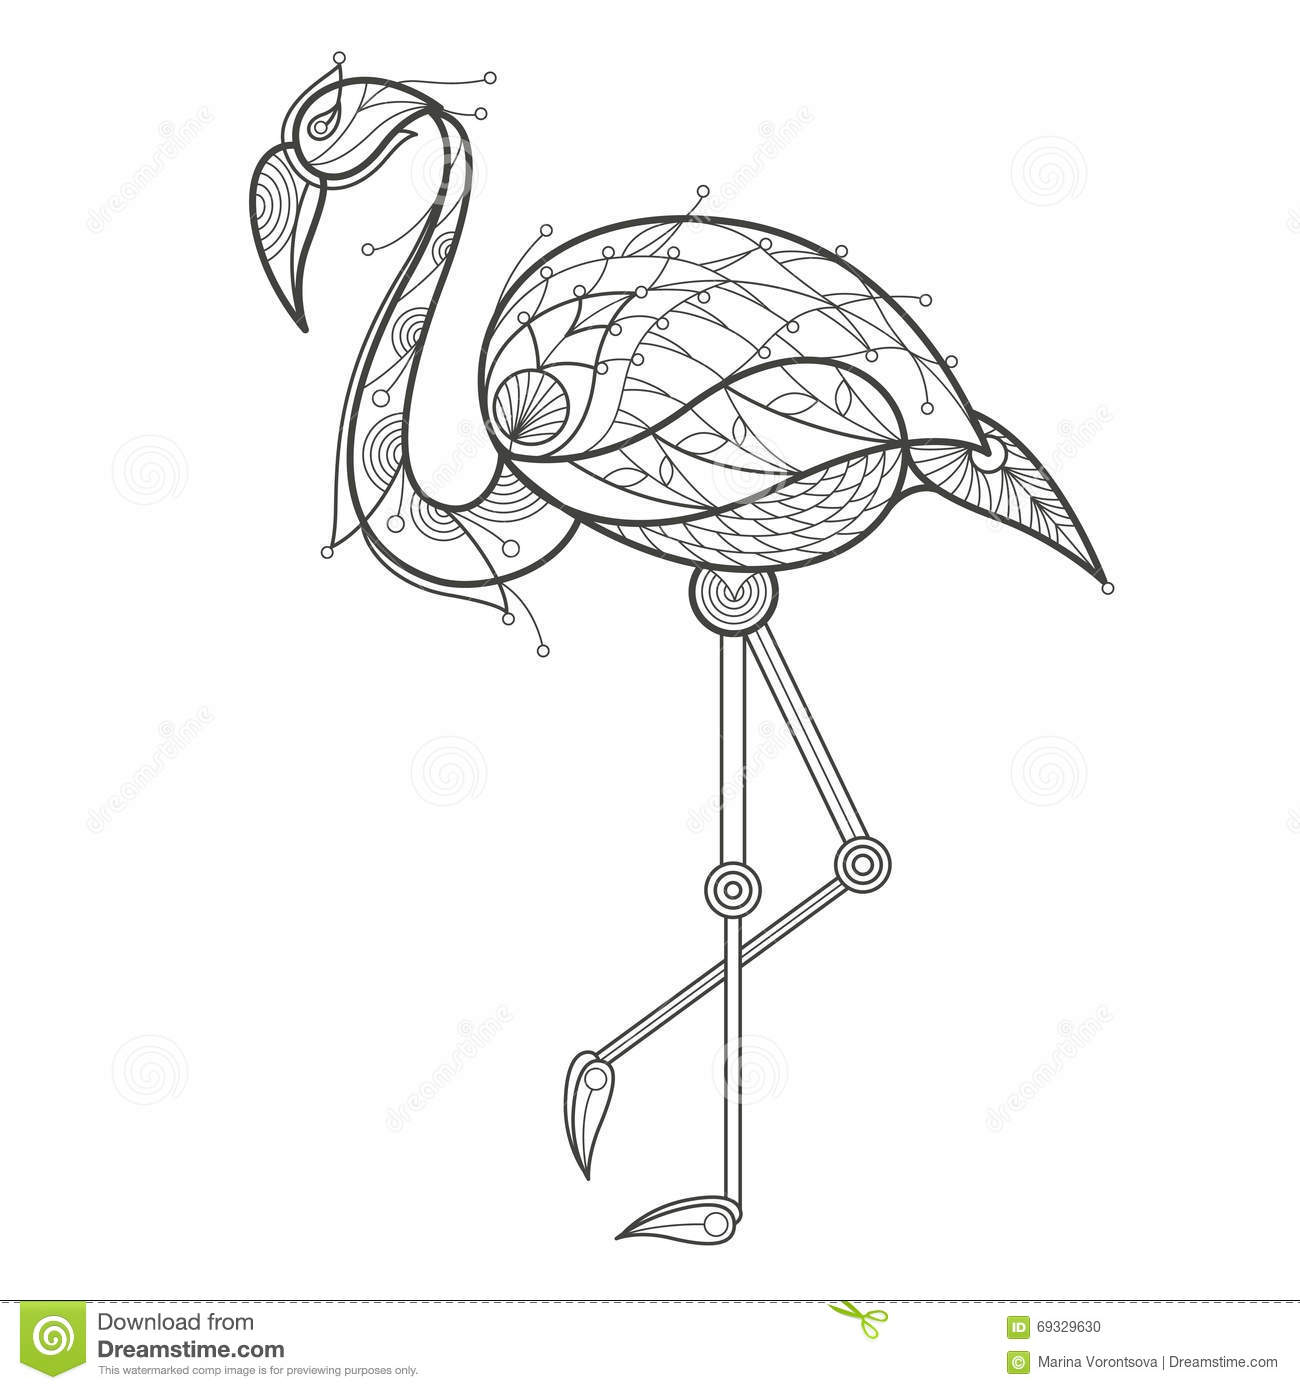 Coloring sheets for adults flamingo - Royalty Free Vector Download Adult Coloring Bird Flamingo